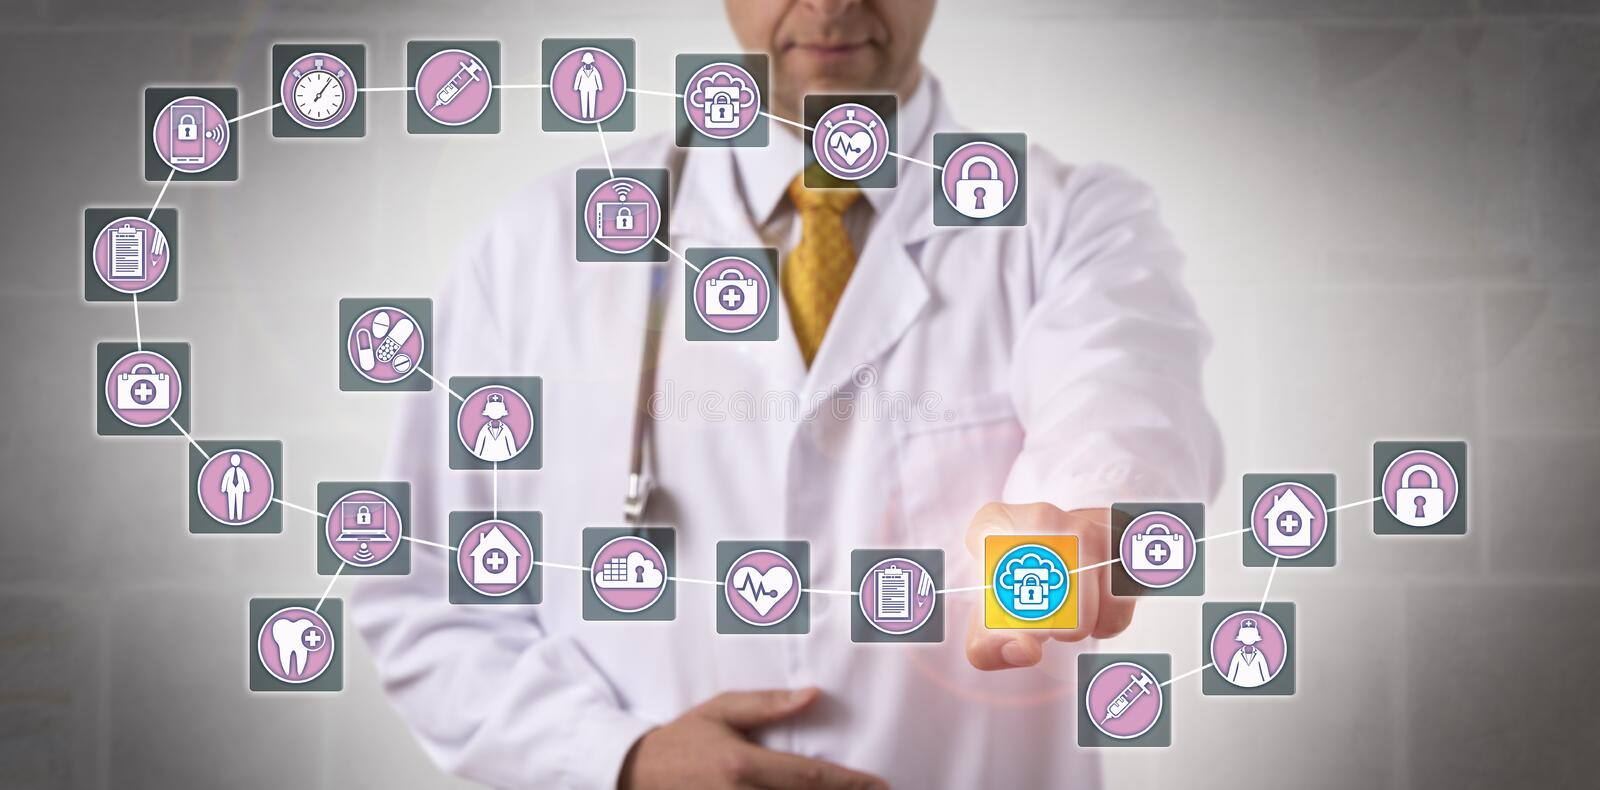 El doctor Touching Data Block en Blockchain médico imagenes de archivo